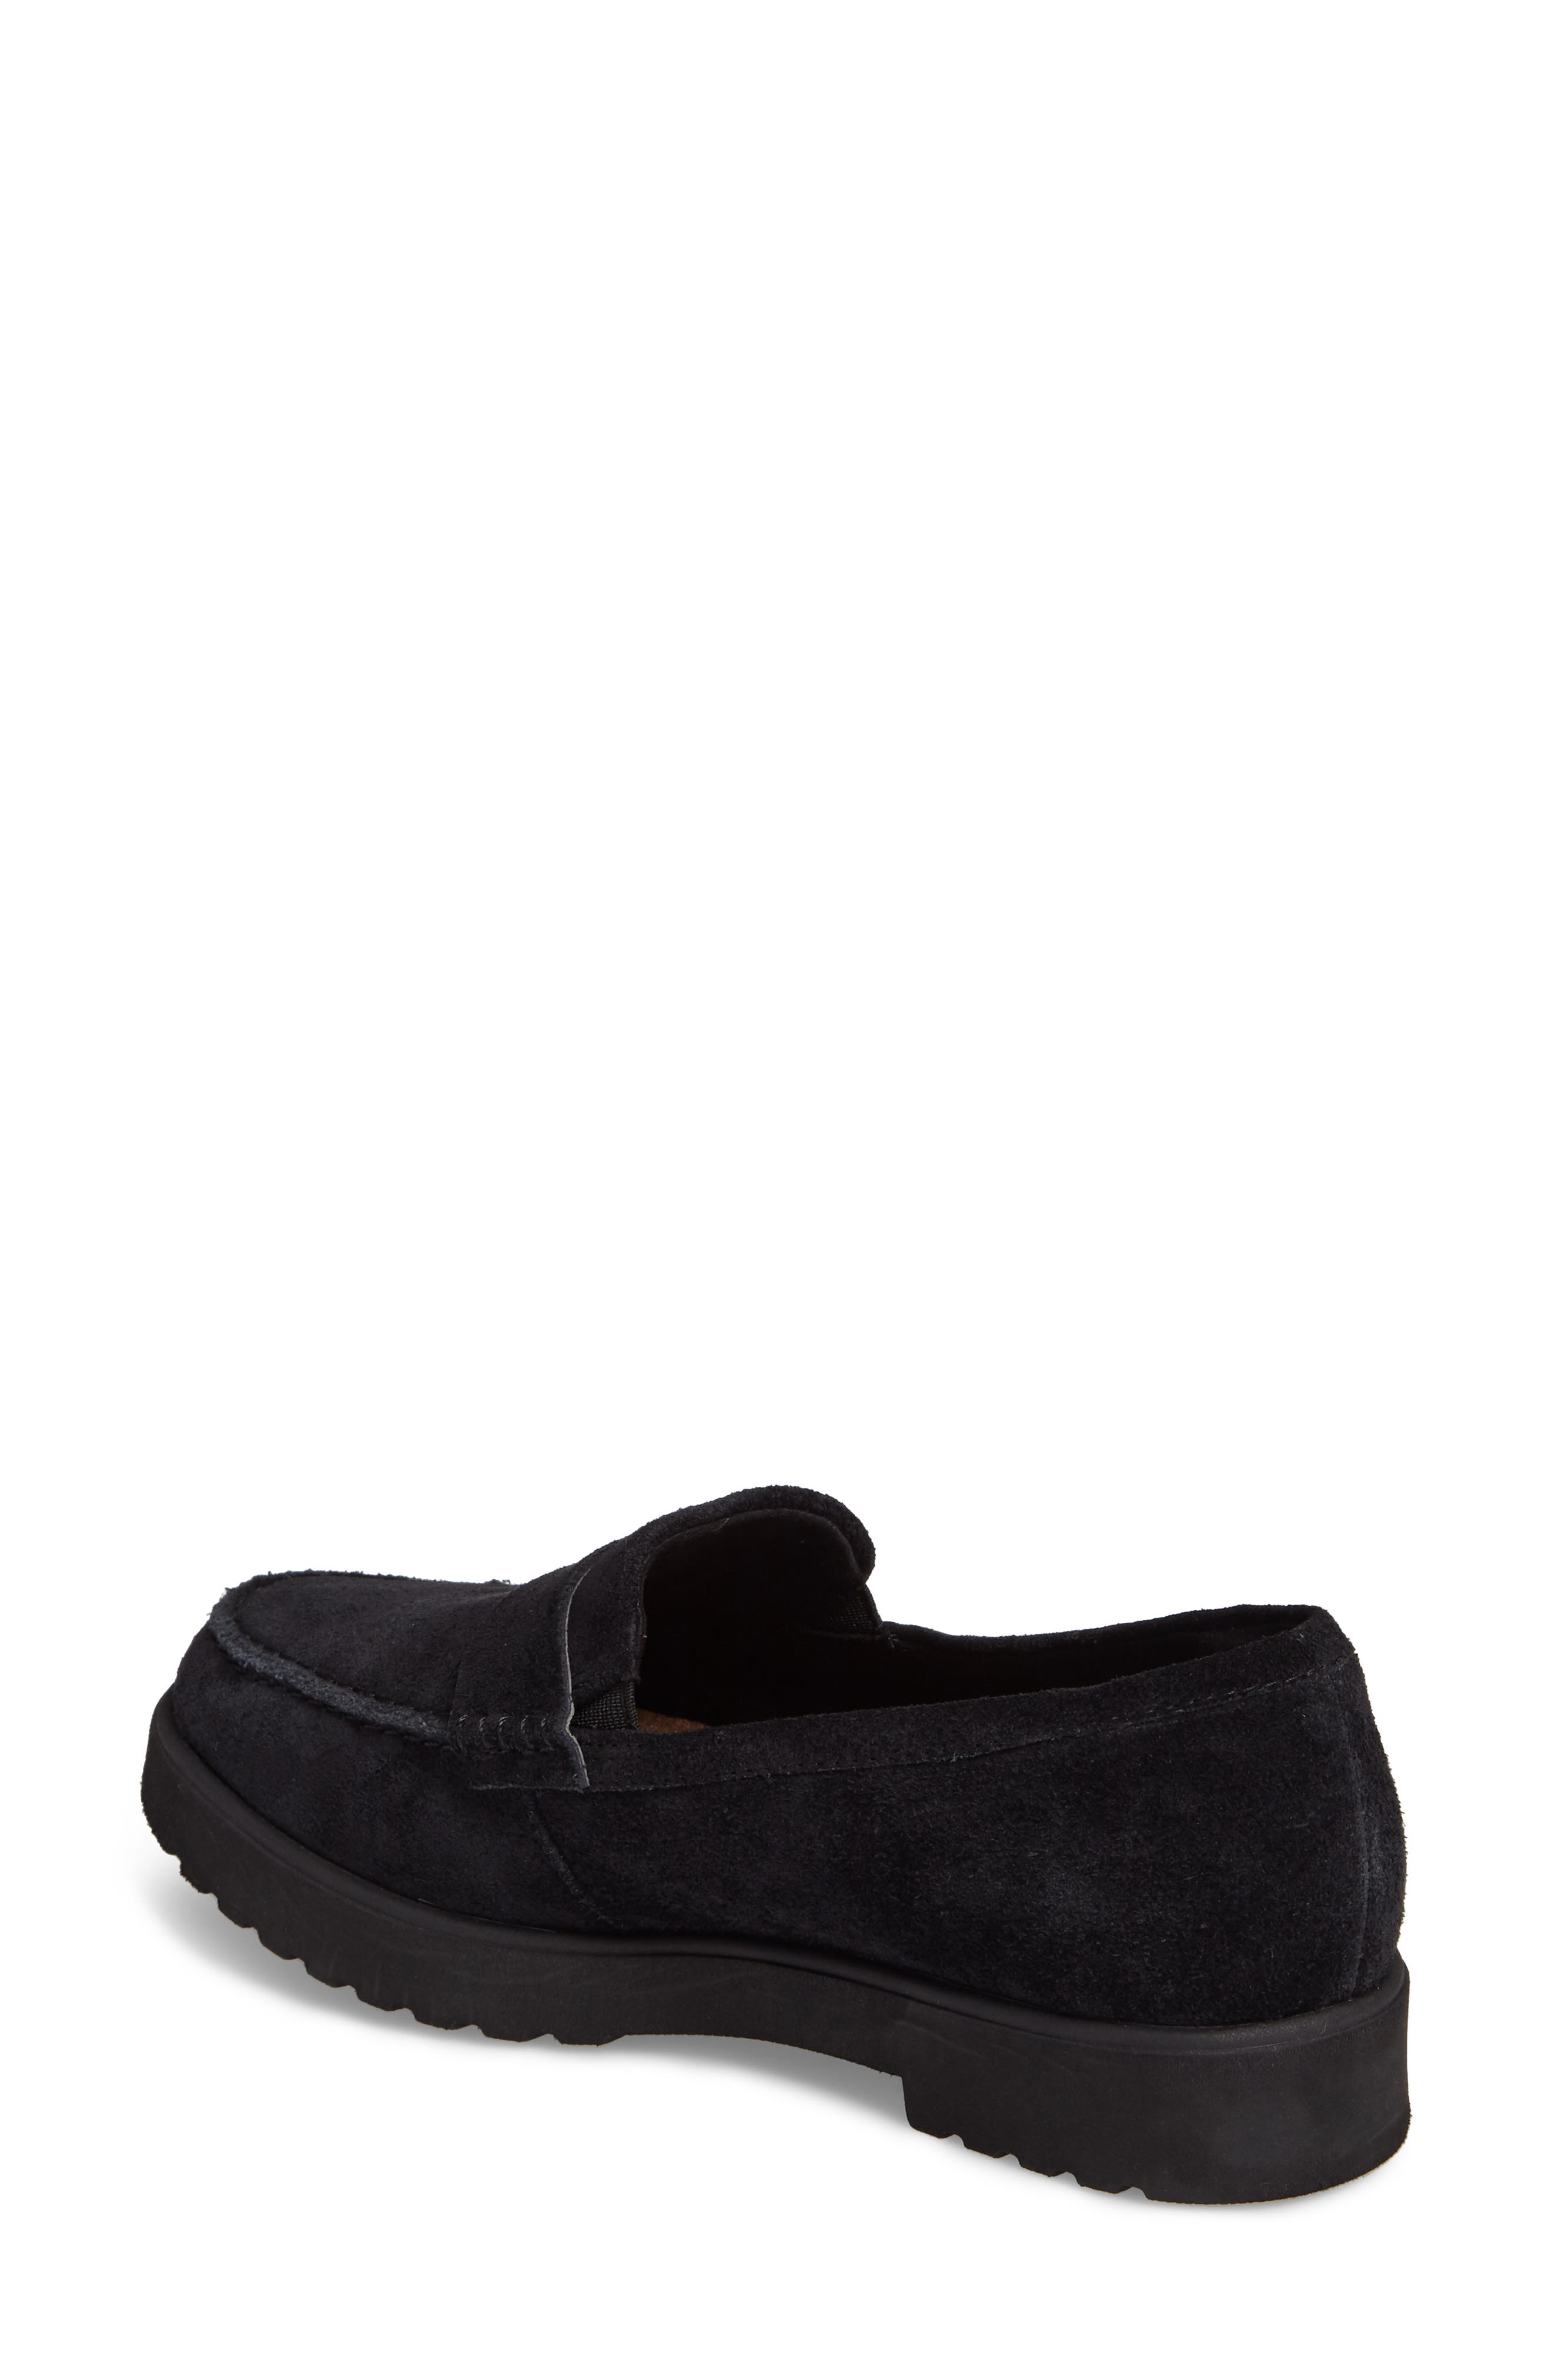 Bellevue Hazen Loafer,                             Alternate thumbnail 2, color,                             001